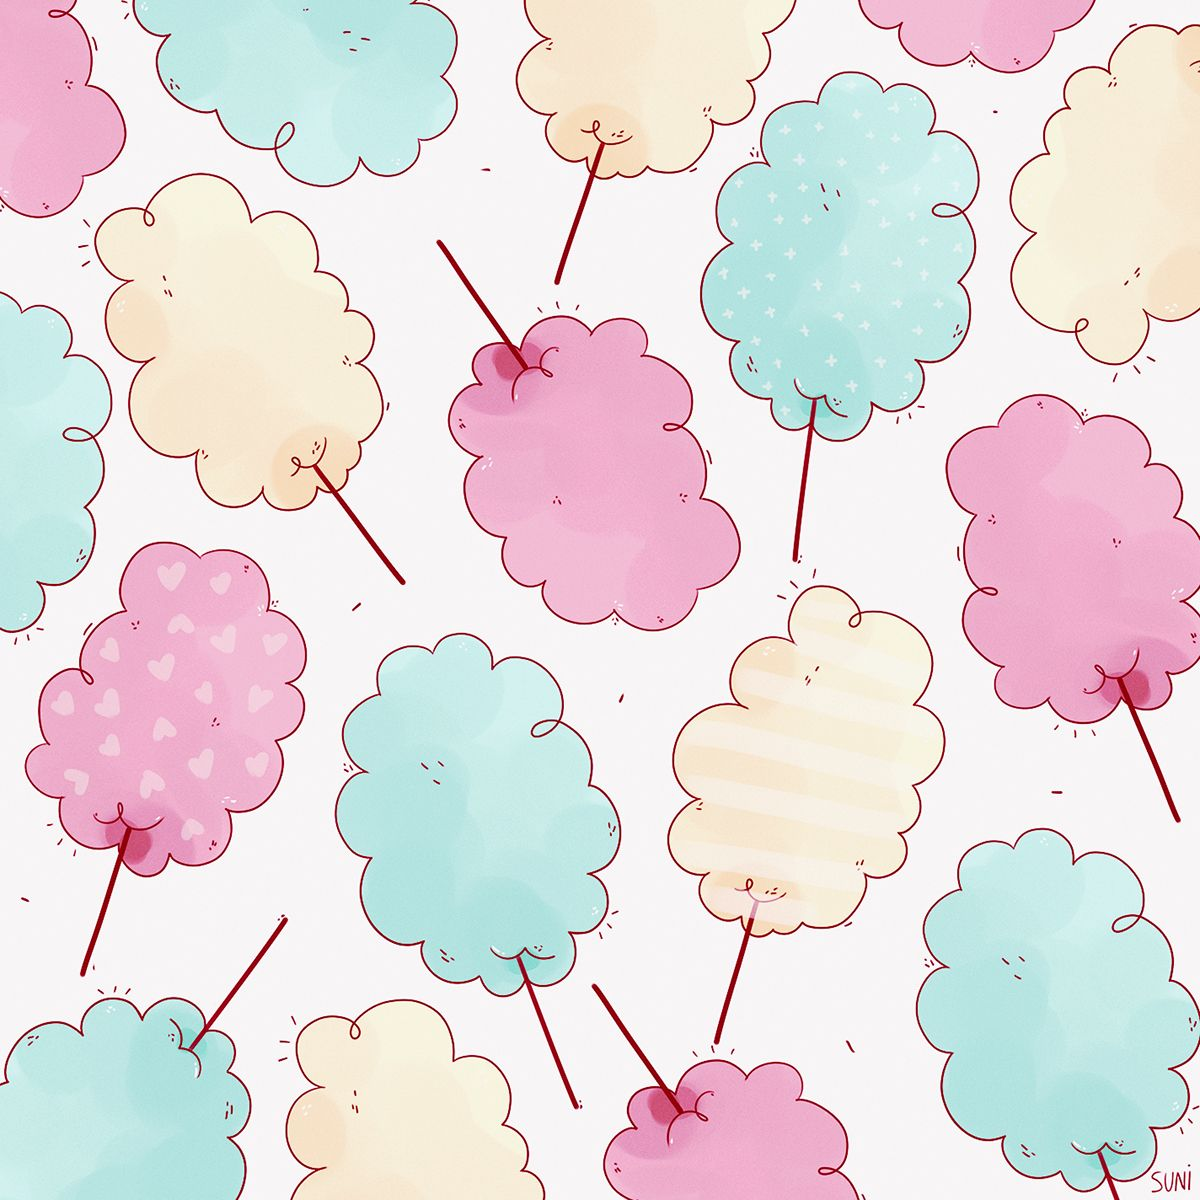 I love cotton candy